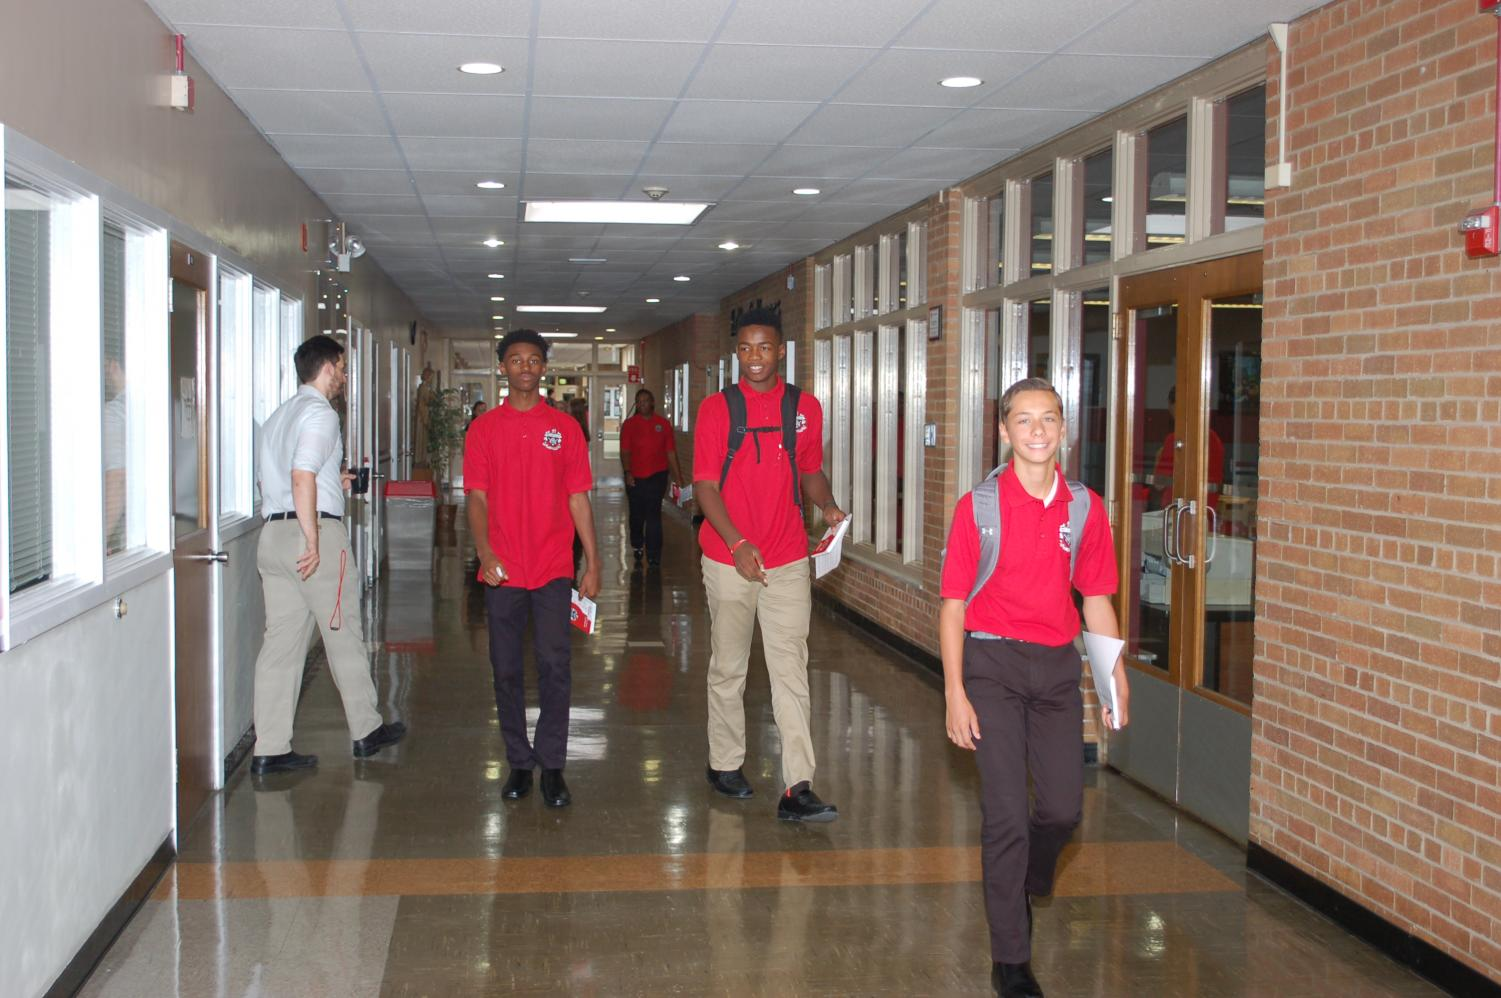 Members of the Class of 2022 make their way into the building on the first day of school.